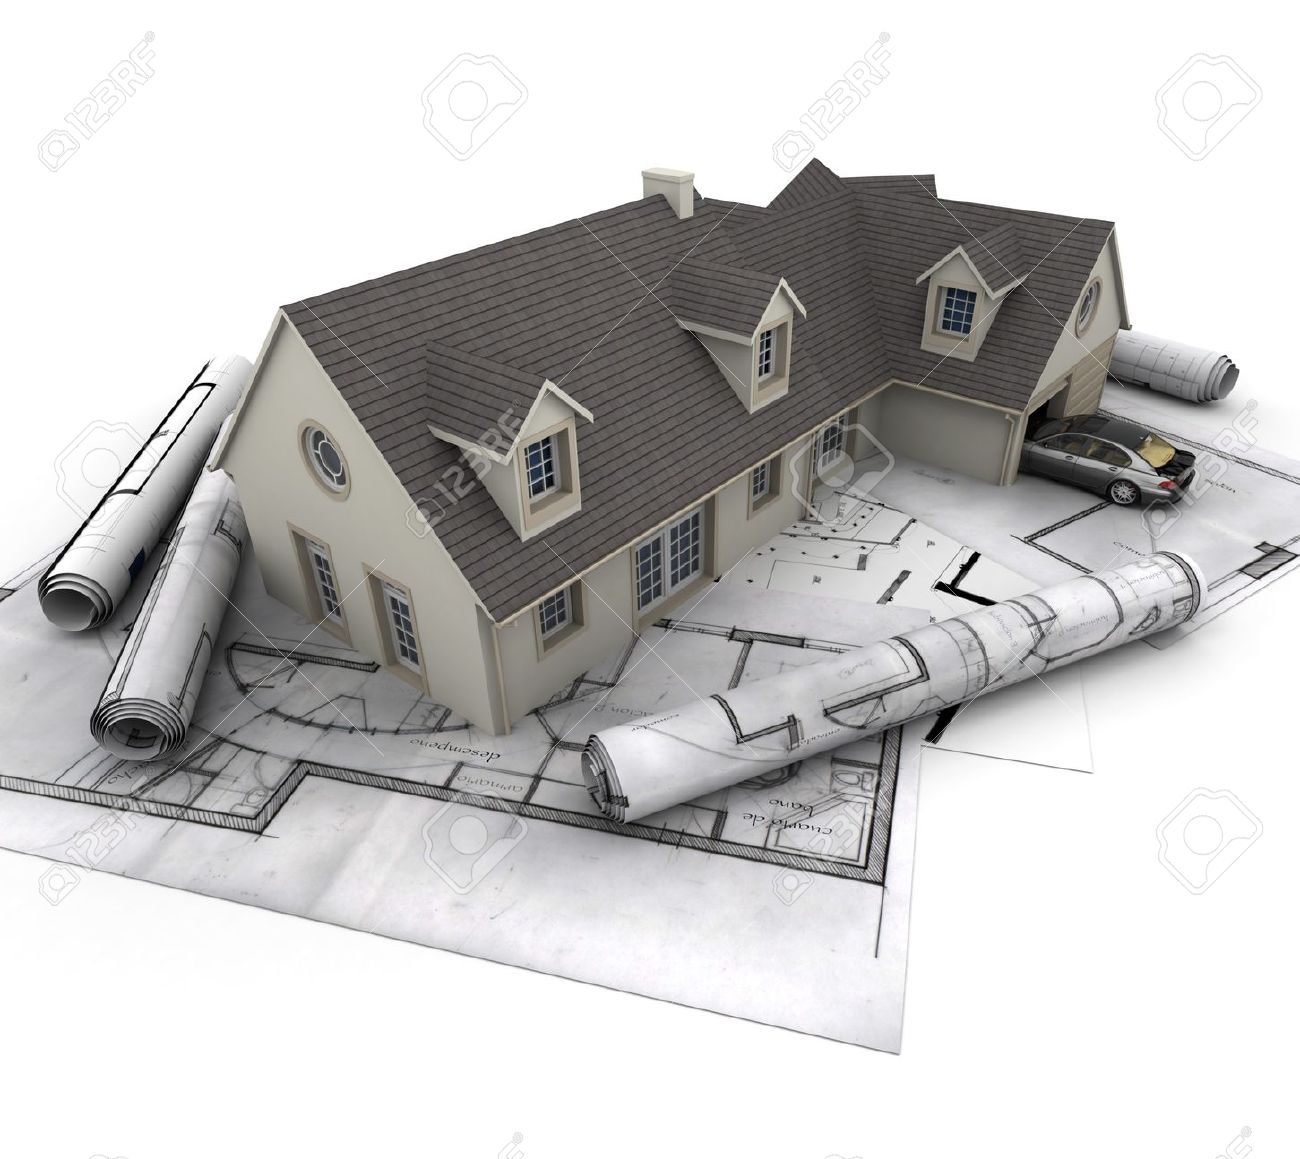 3d rendering of a house with garage on top of blueprints stock 3d rendering of a house with garage on top of blueprints stock photo 16036558 malvernweather